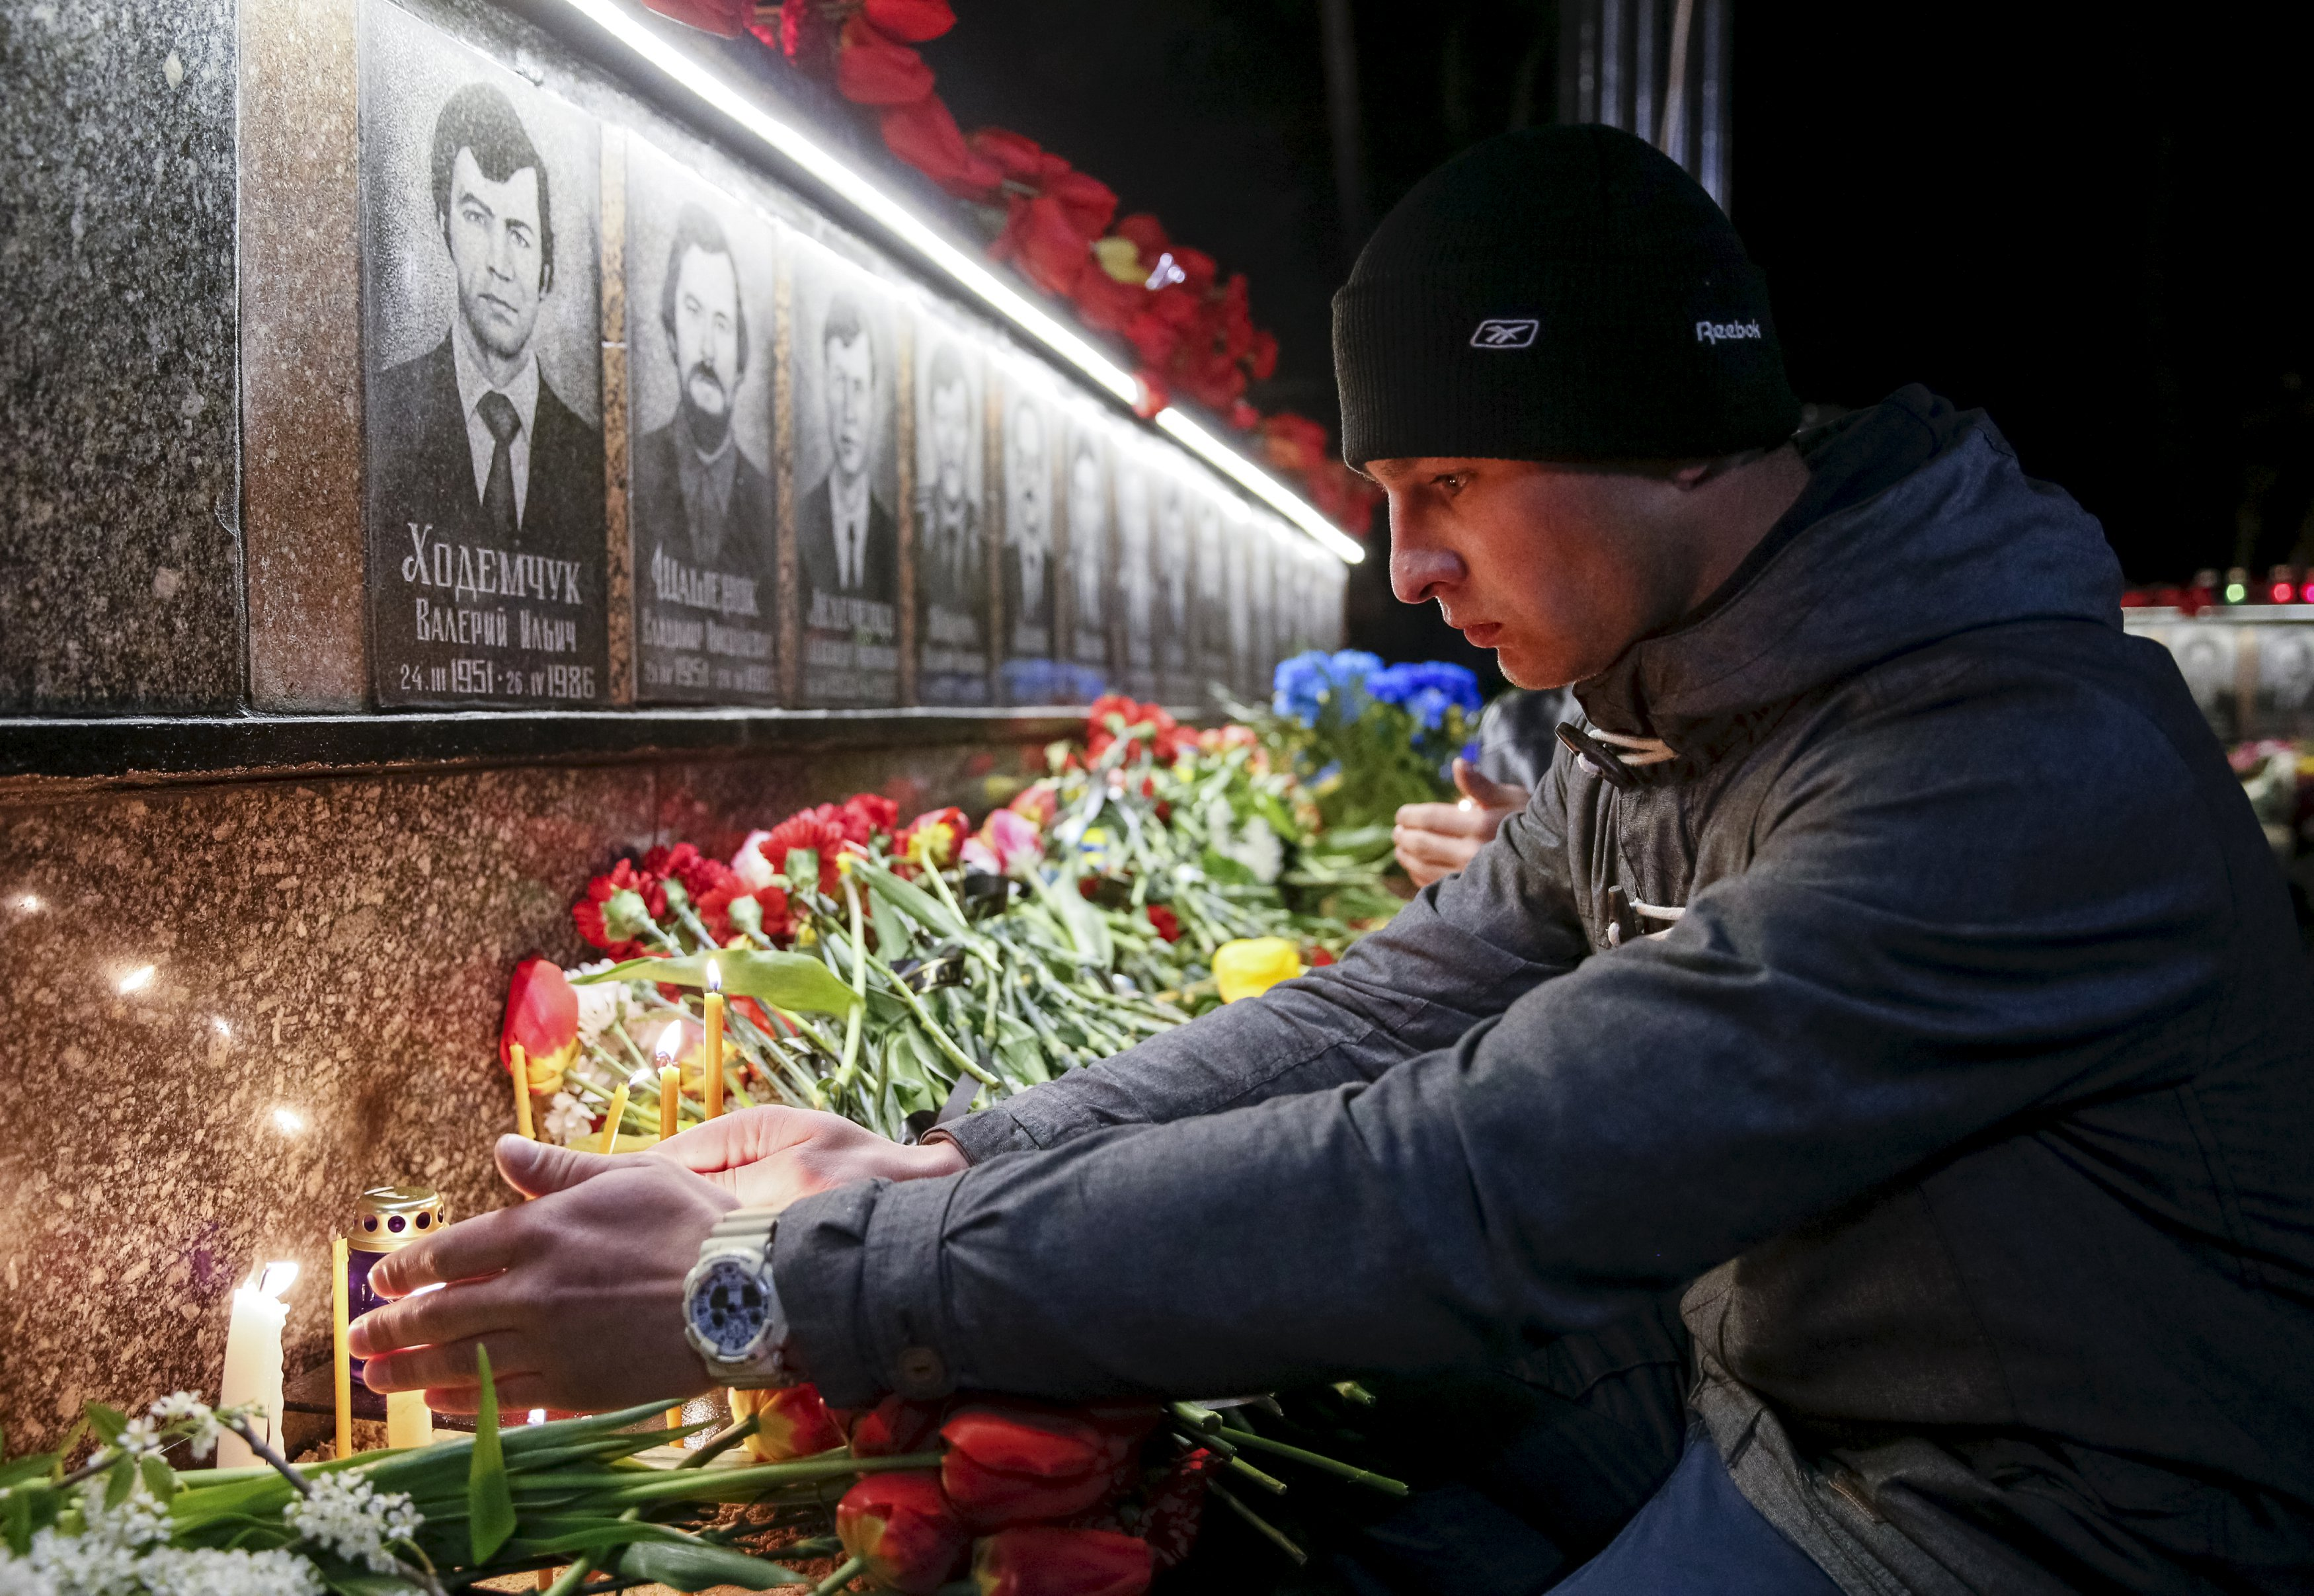 A man lights a candle at a memorial, dedicated to firefighters and workers who died after the Chernobyl nuclear disaster, during a night service in the city of Slavutych